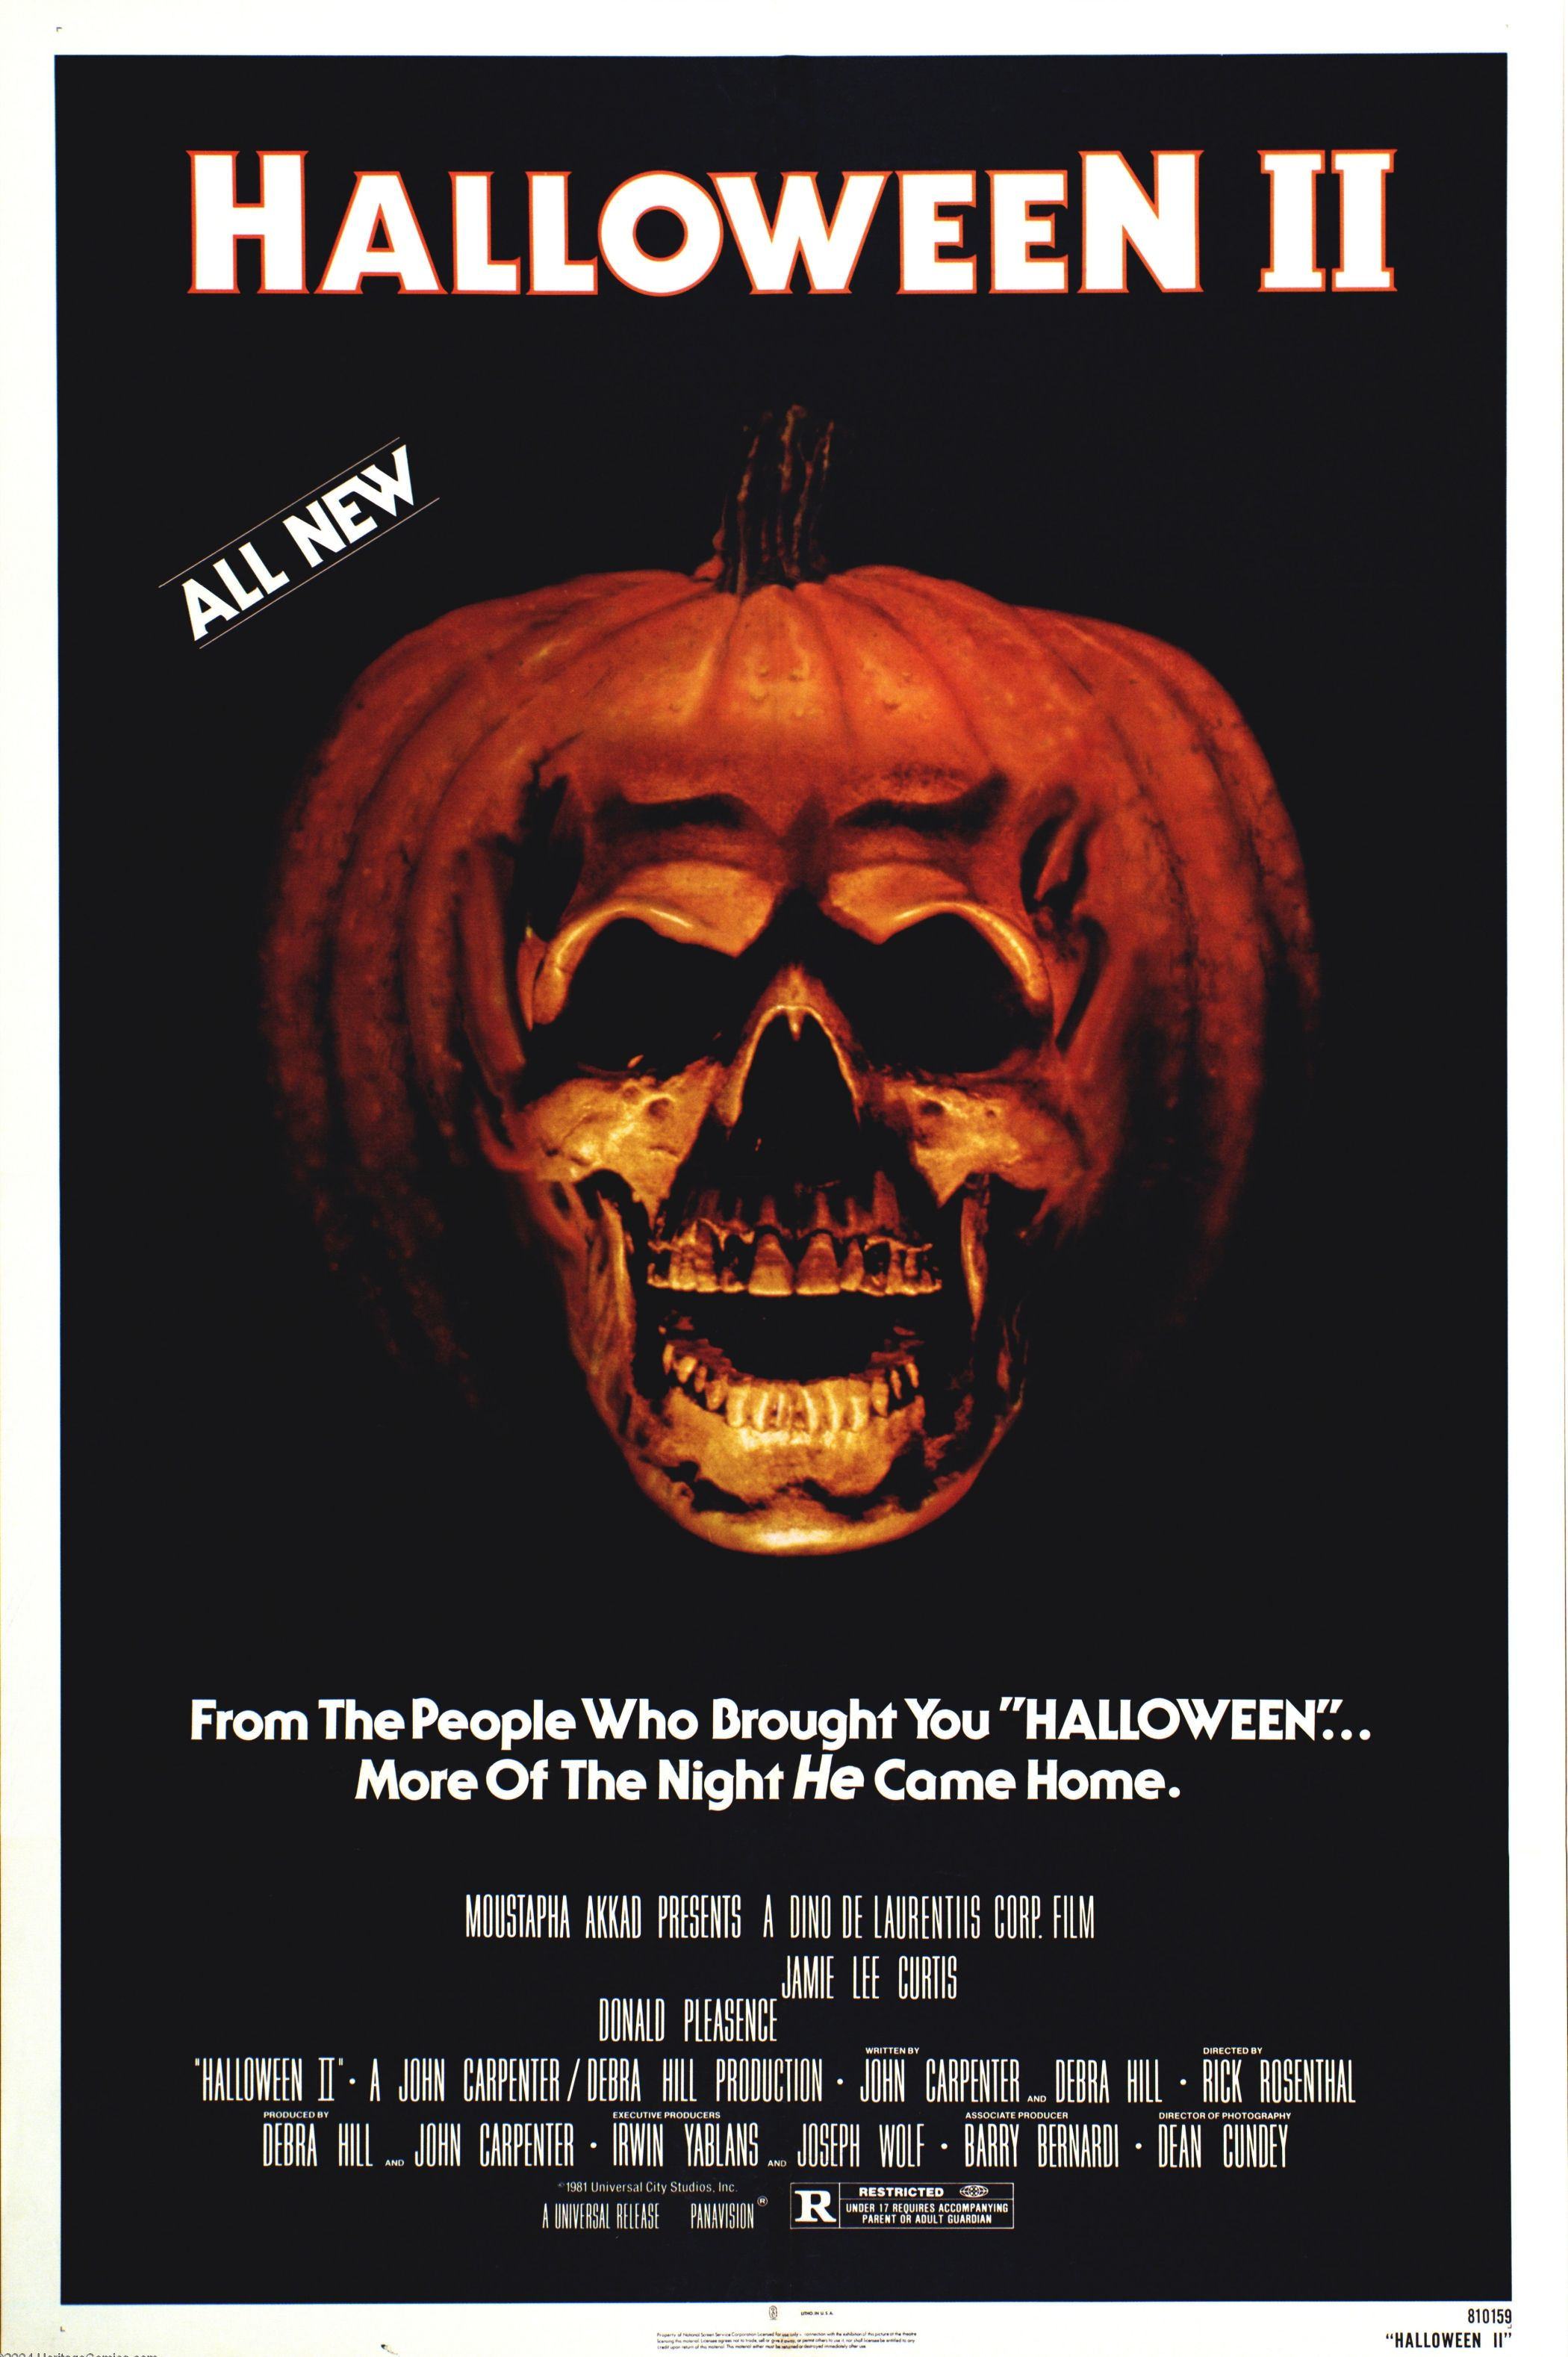 halloween ii original soundtrack cd burned compact discs music house of mysterious secrets specializing in horror merchandise collectibles - Halloween 2 Music